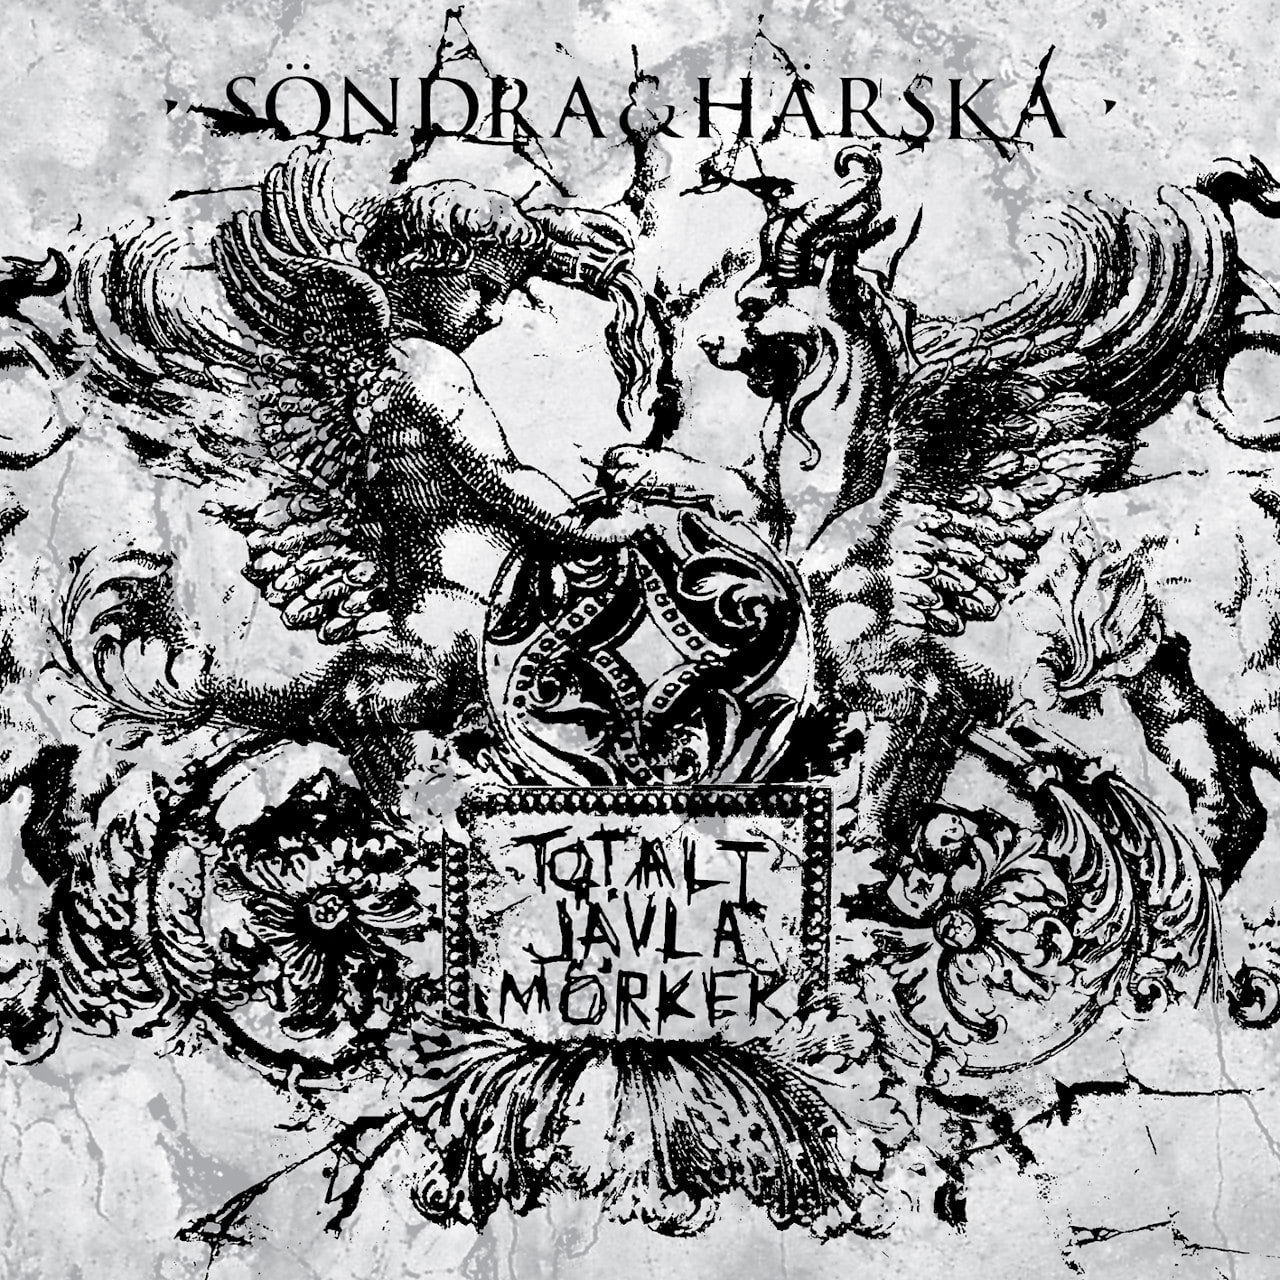 Totalt Javla Morker - Sondra & Harska (CD)